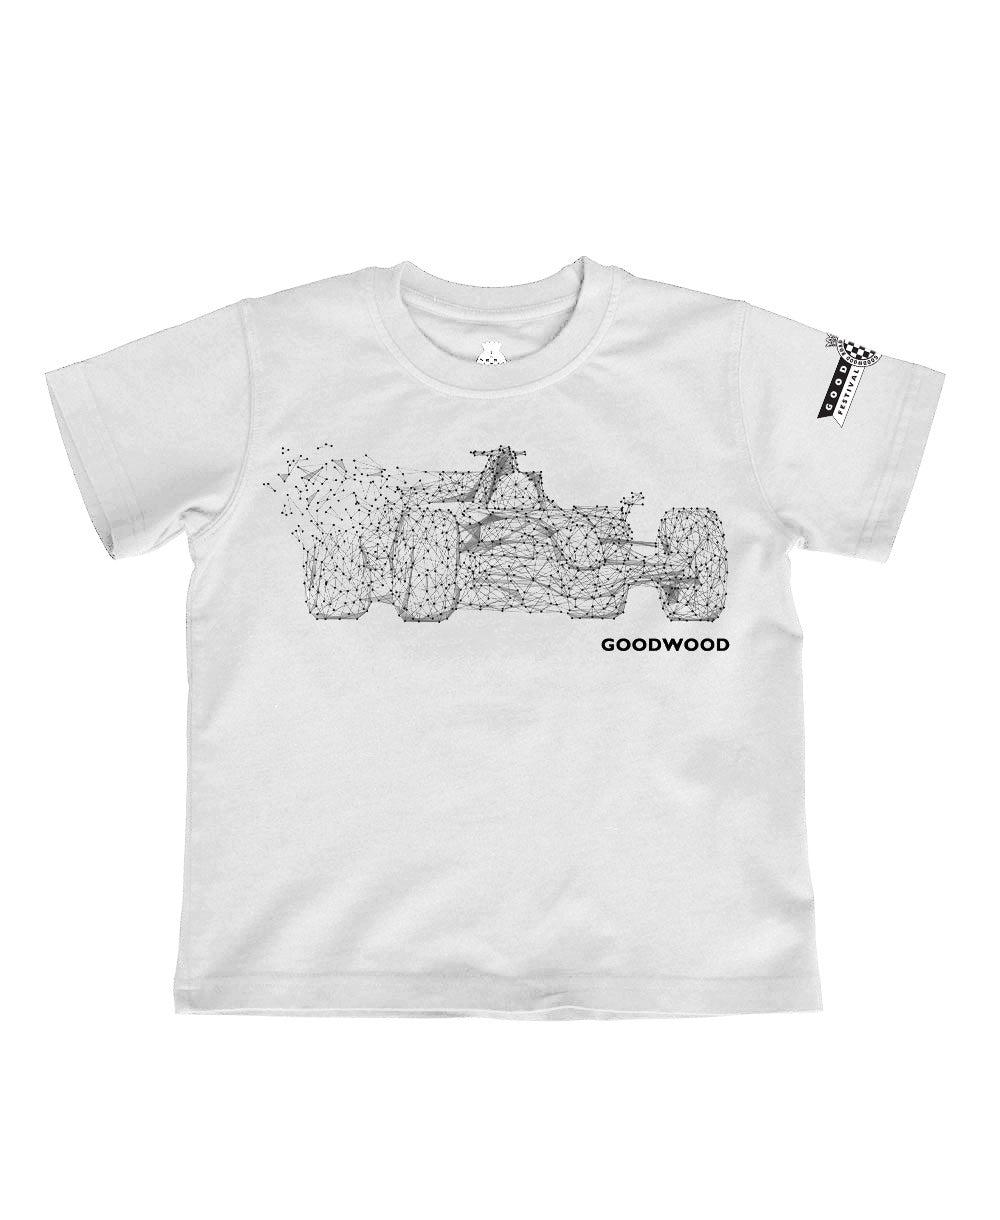 Festival of Speed F1 Children's T-Shirt